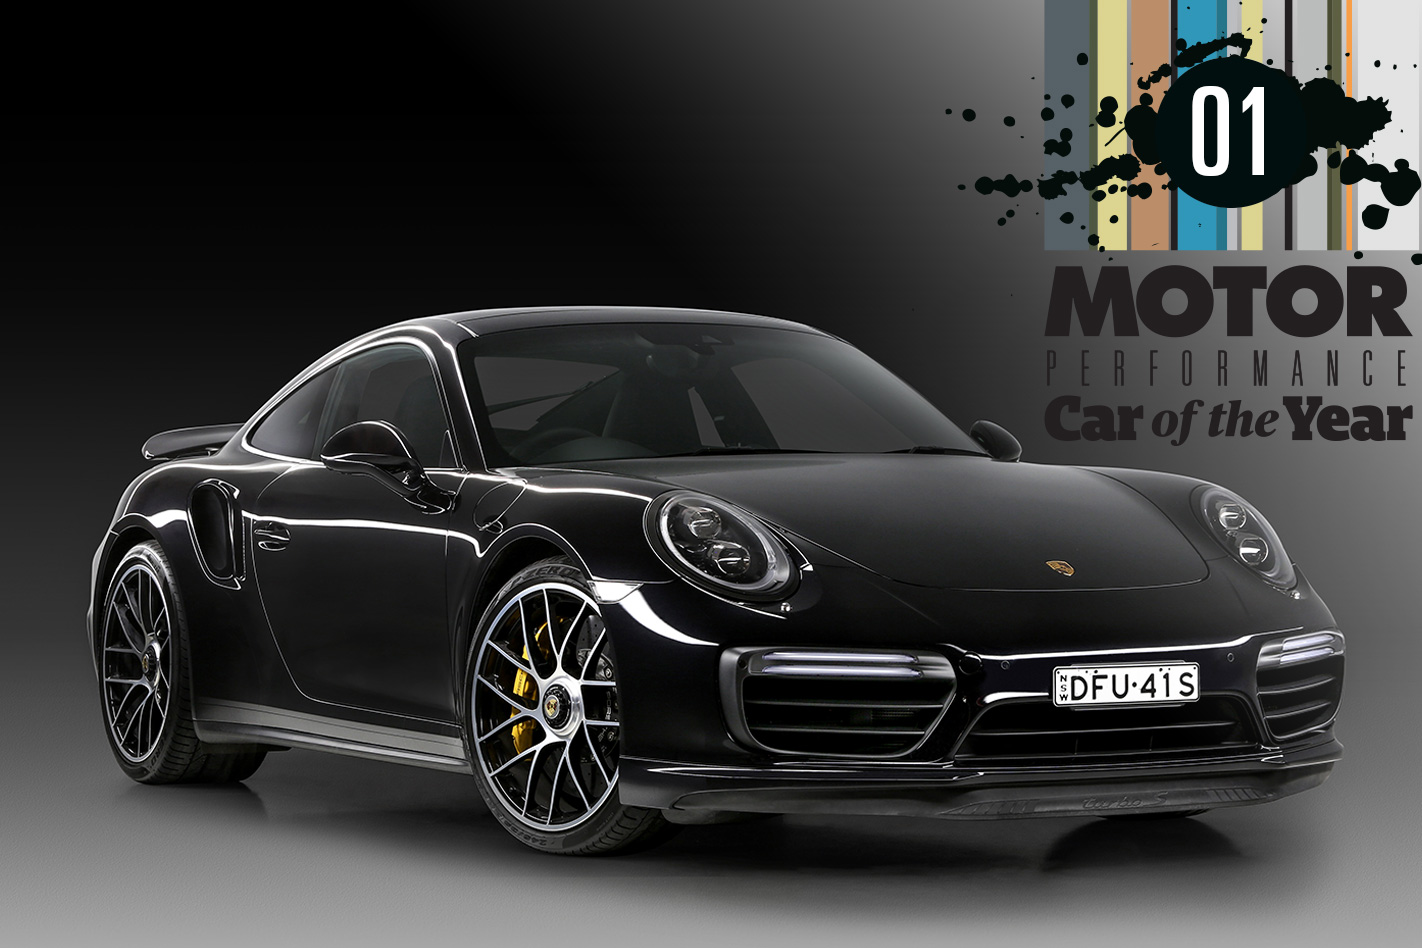 porsche 911 turbo s 2017 performance car of the year winner motor. Black Bedroom Furniture Sets. Home Design Ideas